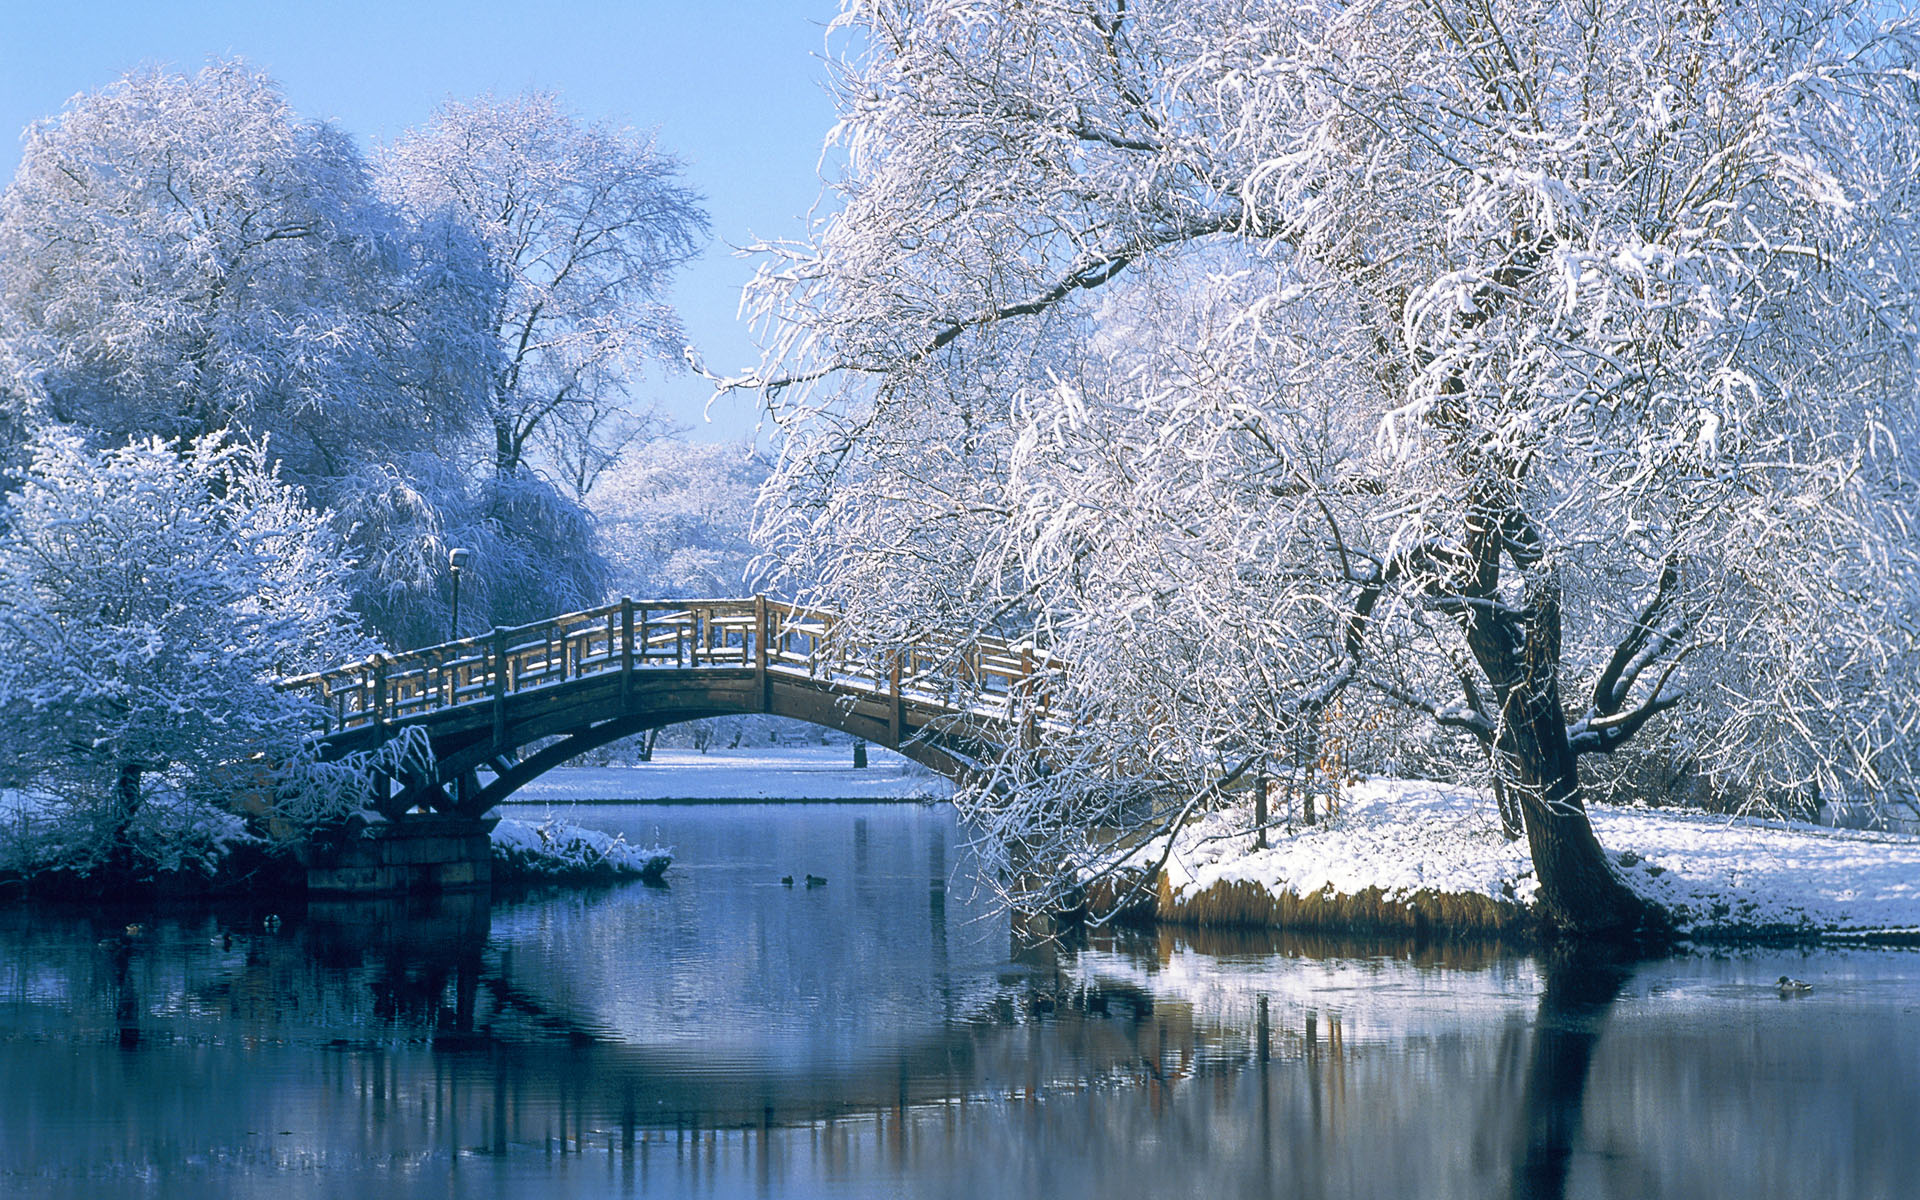 winter park schnee brcke see lake snow bridge wallpaper 1920x1200 1920x1200